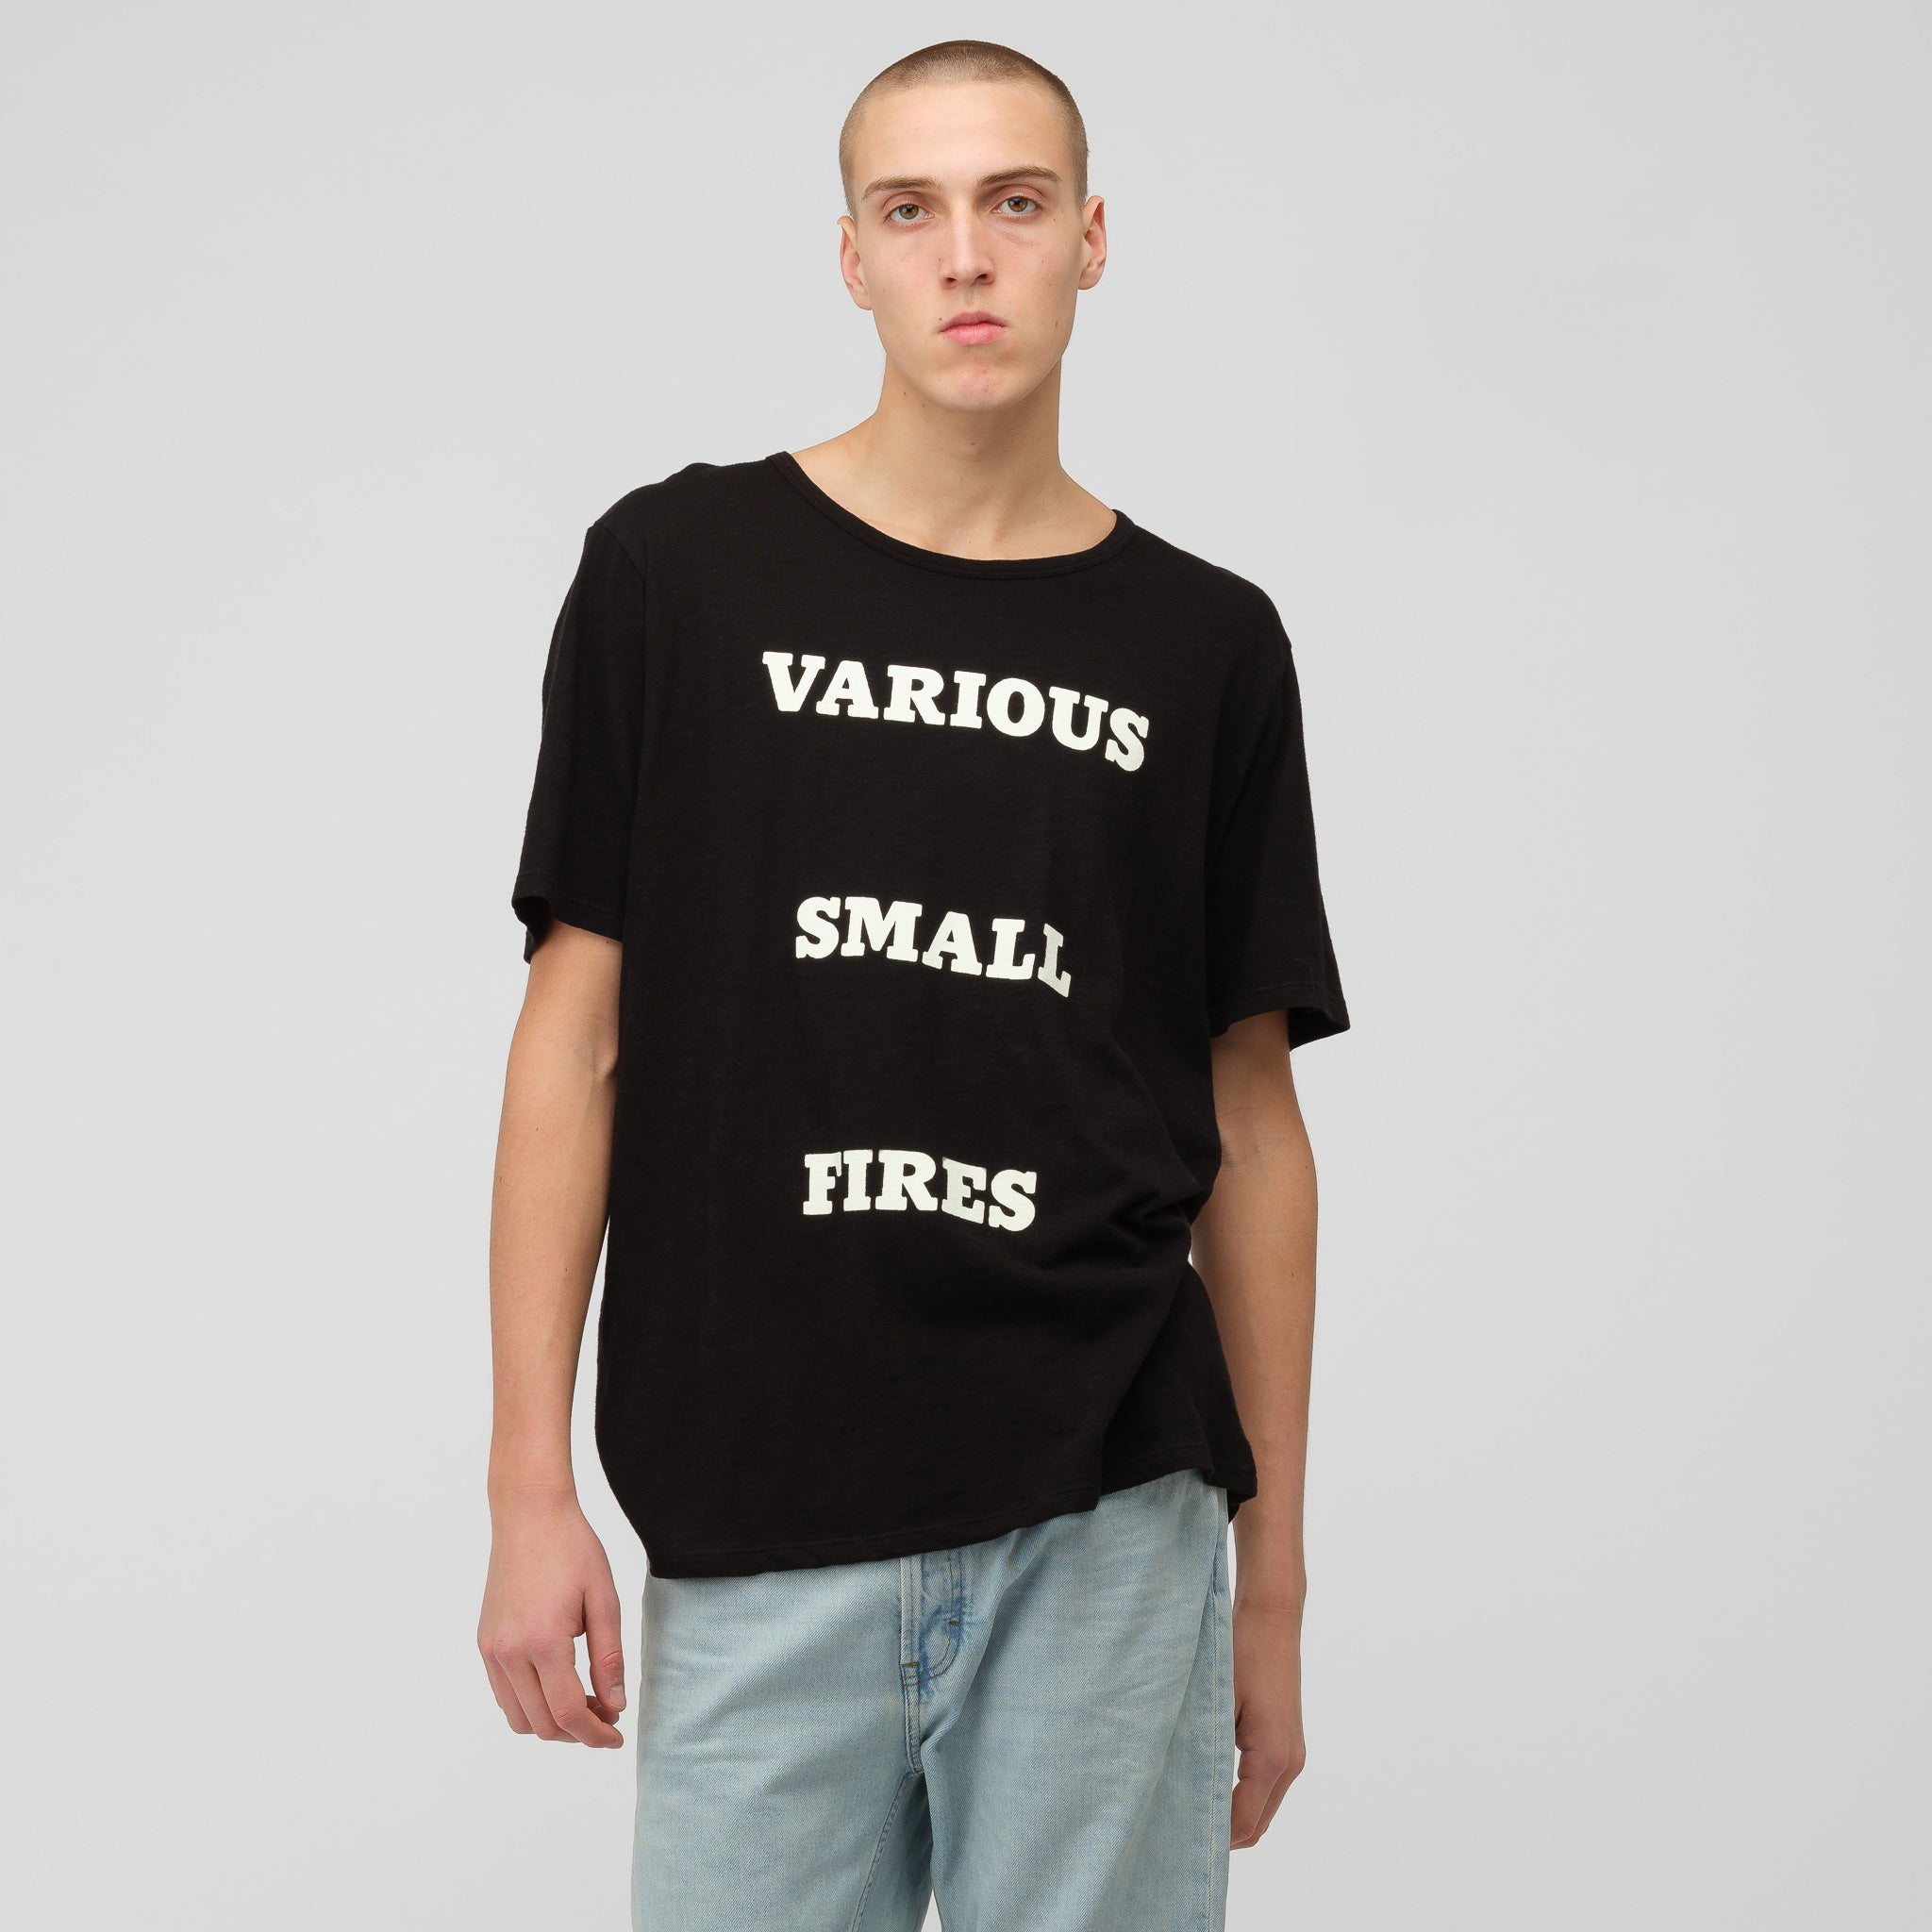 Various Small Fires T-Shirt in Black/White